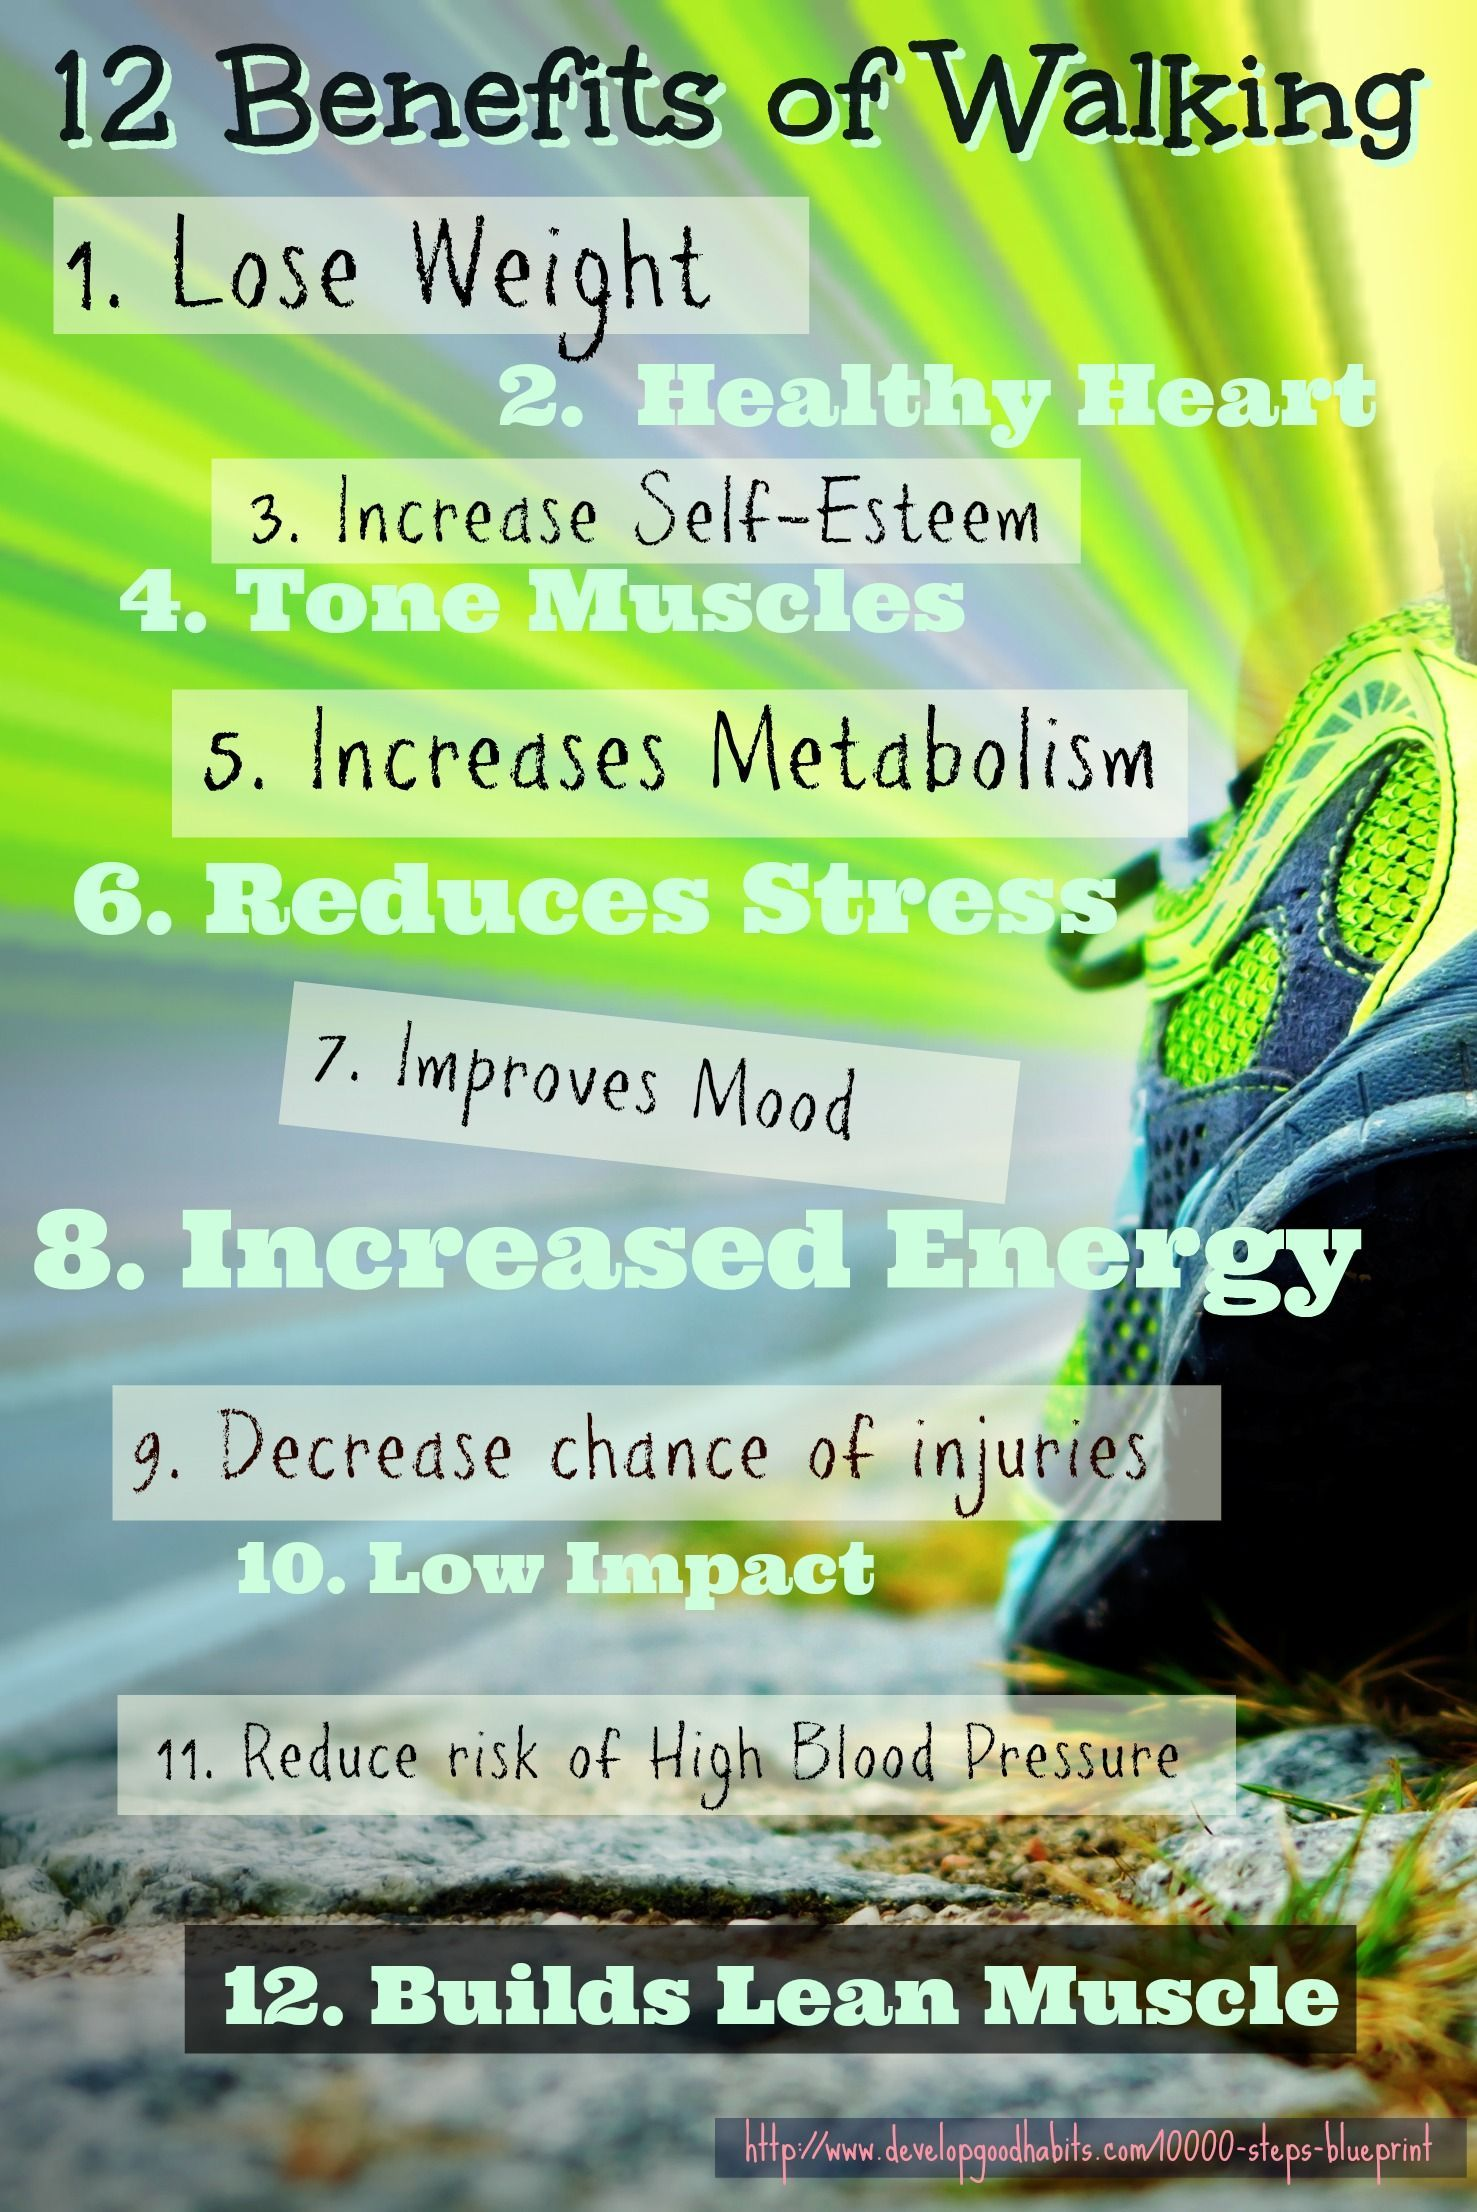 #healthyliving #exercise #benefits #lifetime #fitness #healthy #walking #health #daily #steps #leads...